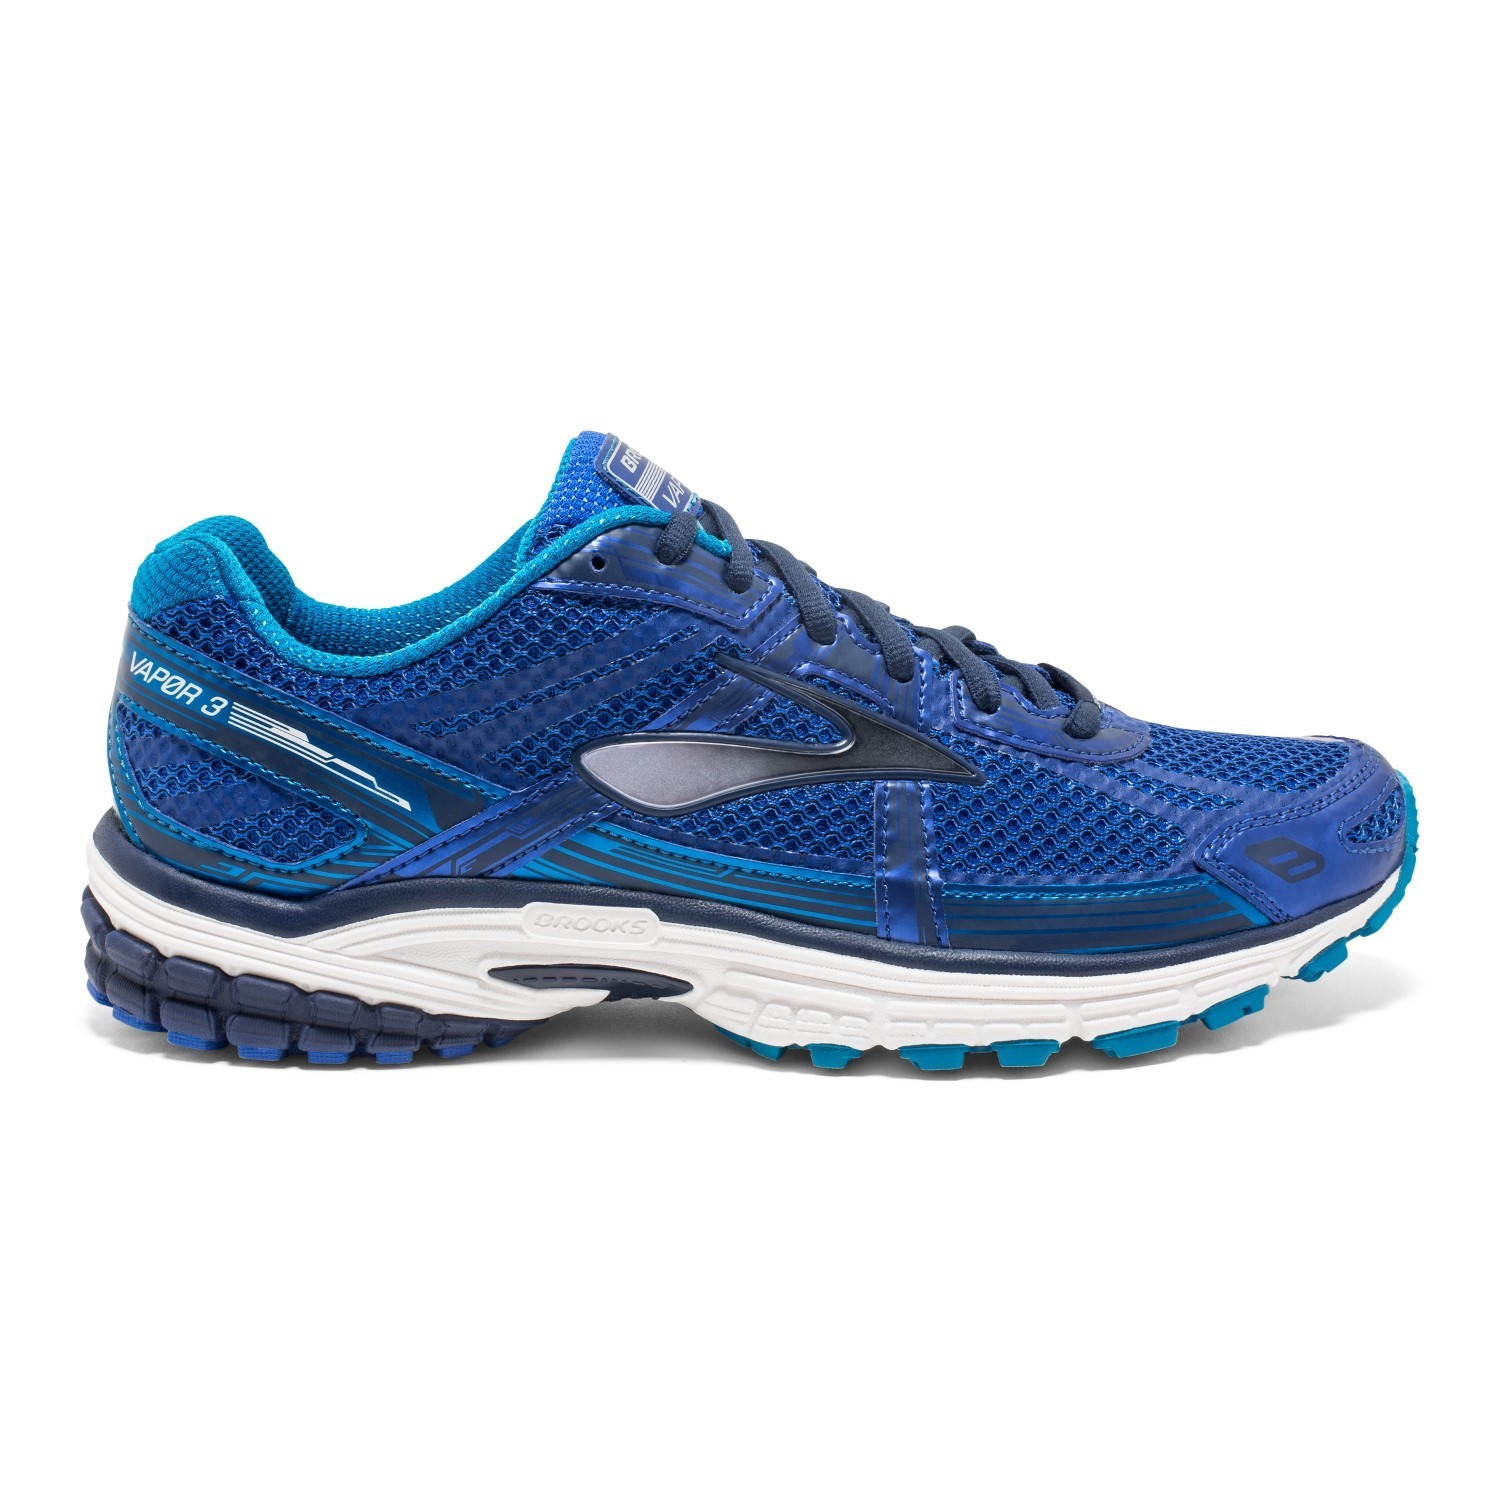 Brooks Vapor 3 - Mens Running Shoes - Brooks Blue/Peacoat